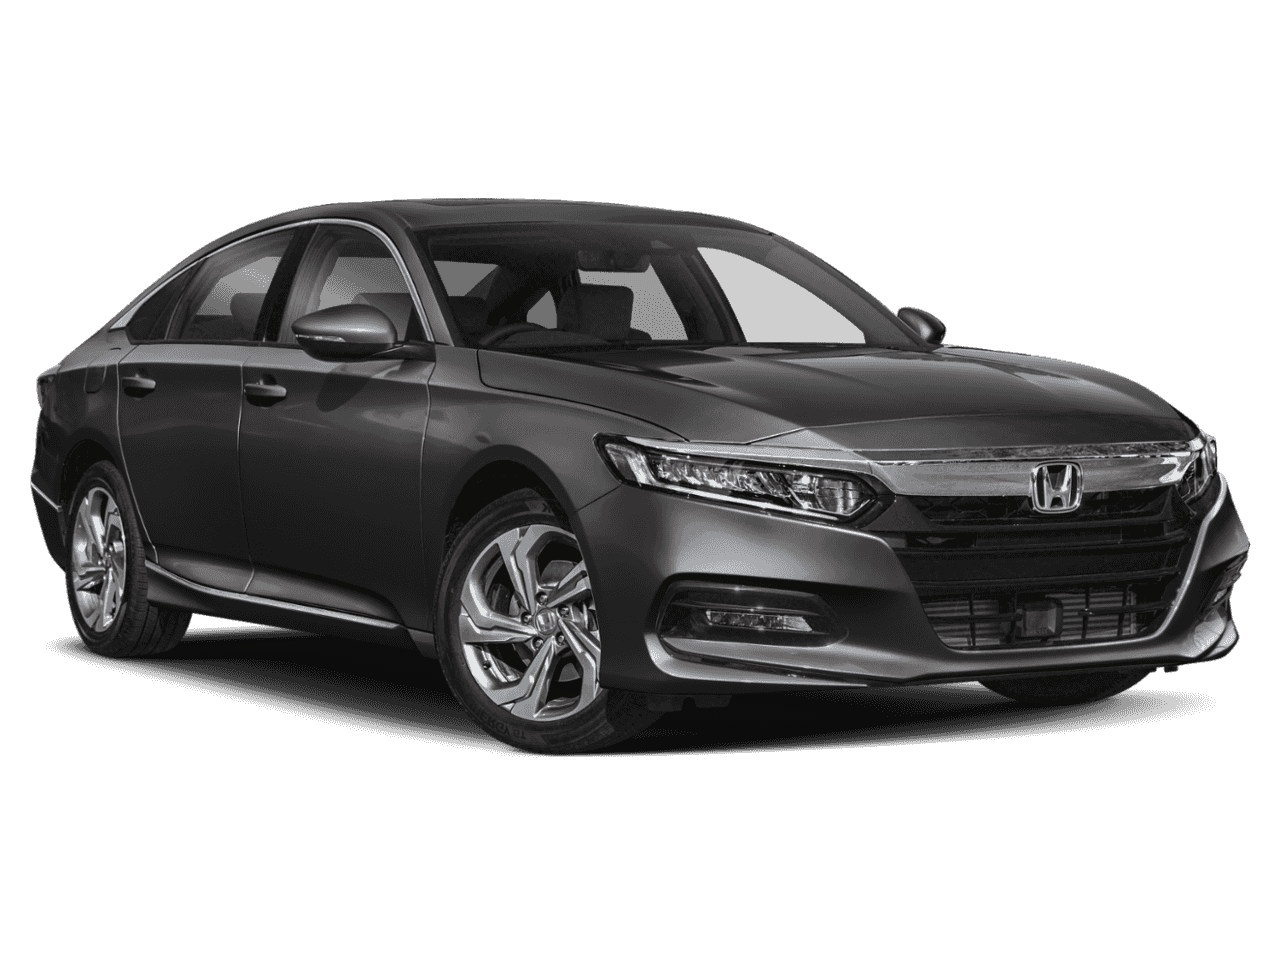 New 2020 Honda Accord Sedan EX-L 1.5T CVT